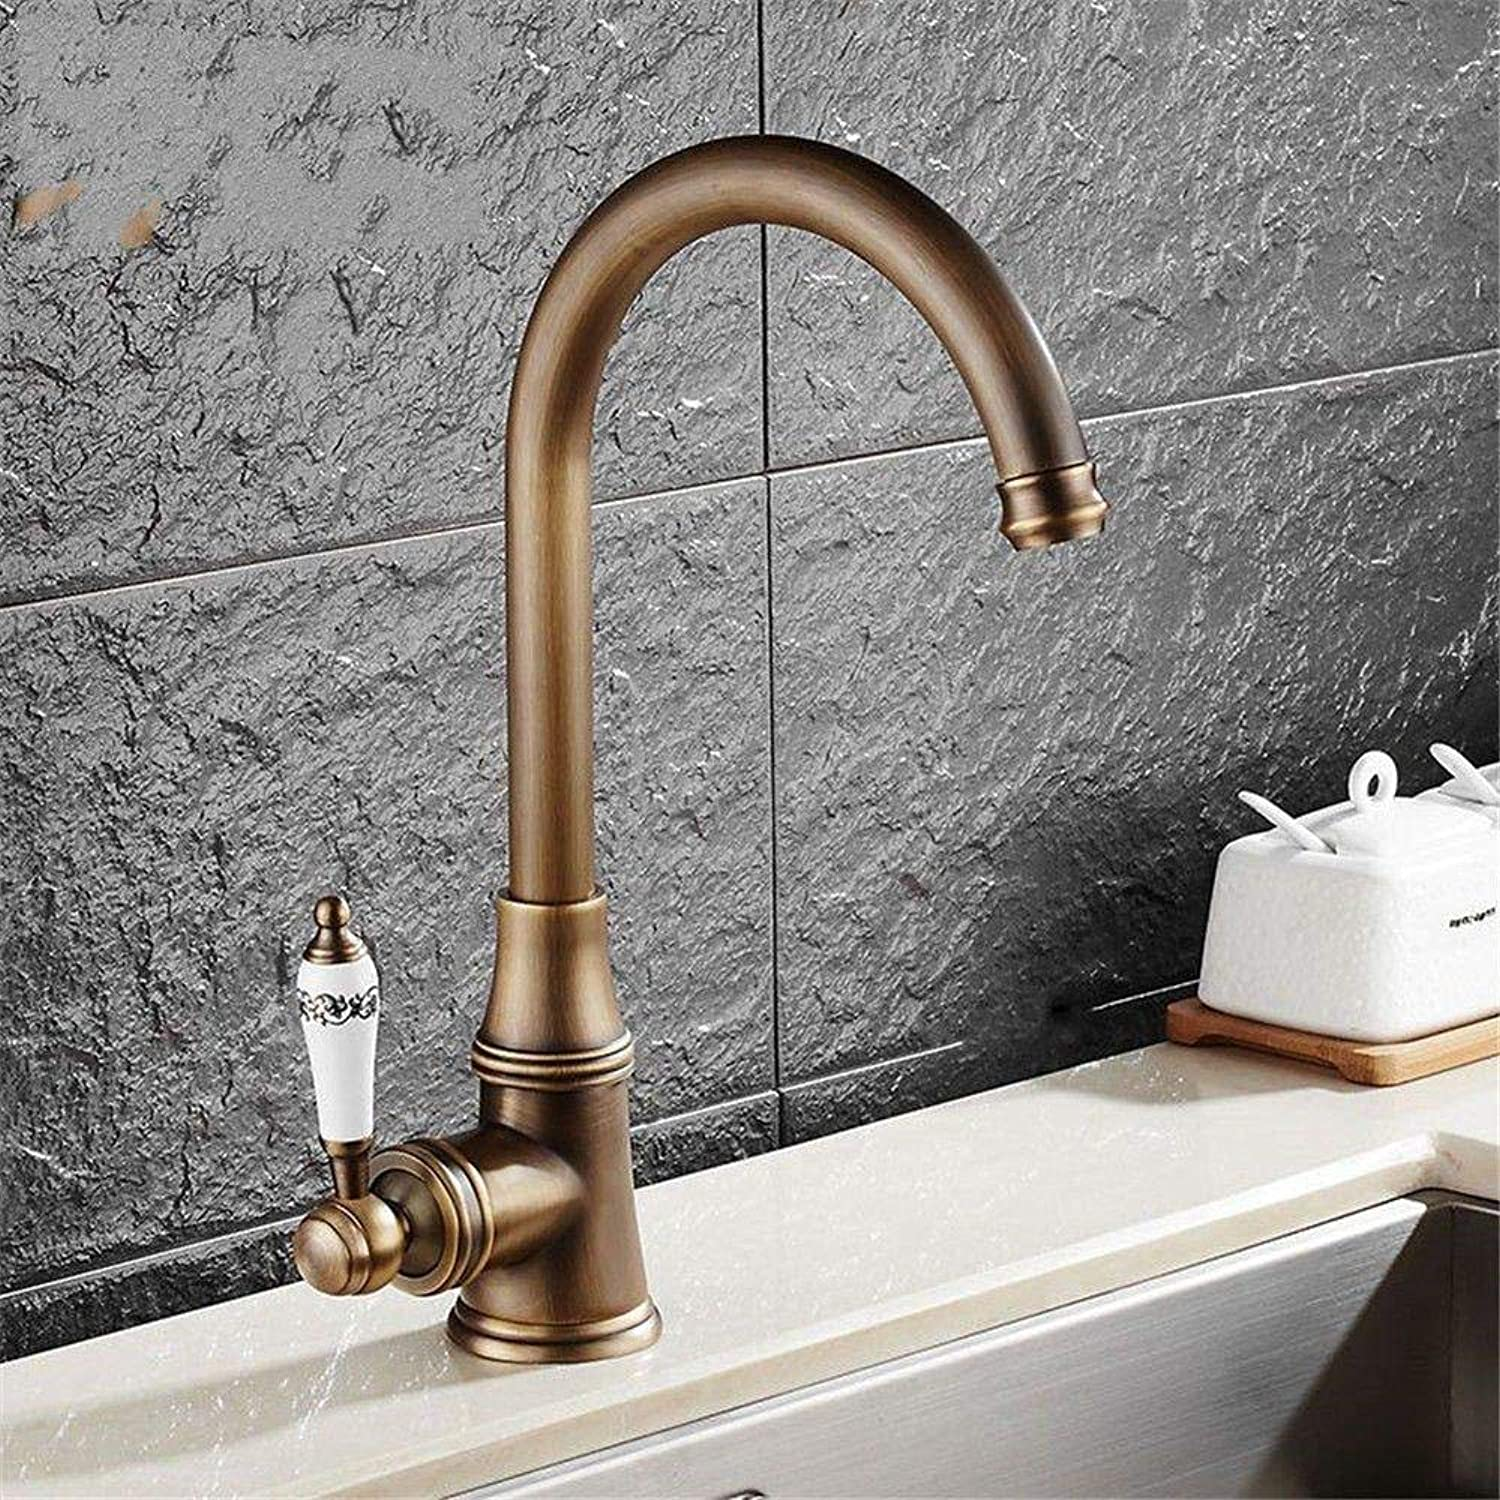 Honcx Faucet Taps Copper Kitchen Faucet Sink Washing Dish Sink Faucet Pull Faucet redating Hot and Cold Mixing Valve Basin Faucet